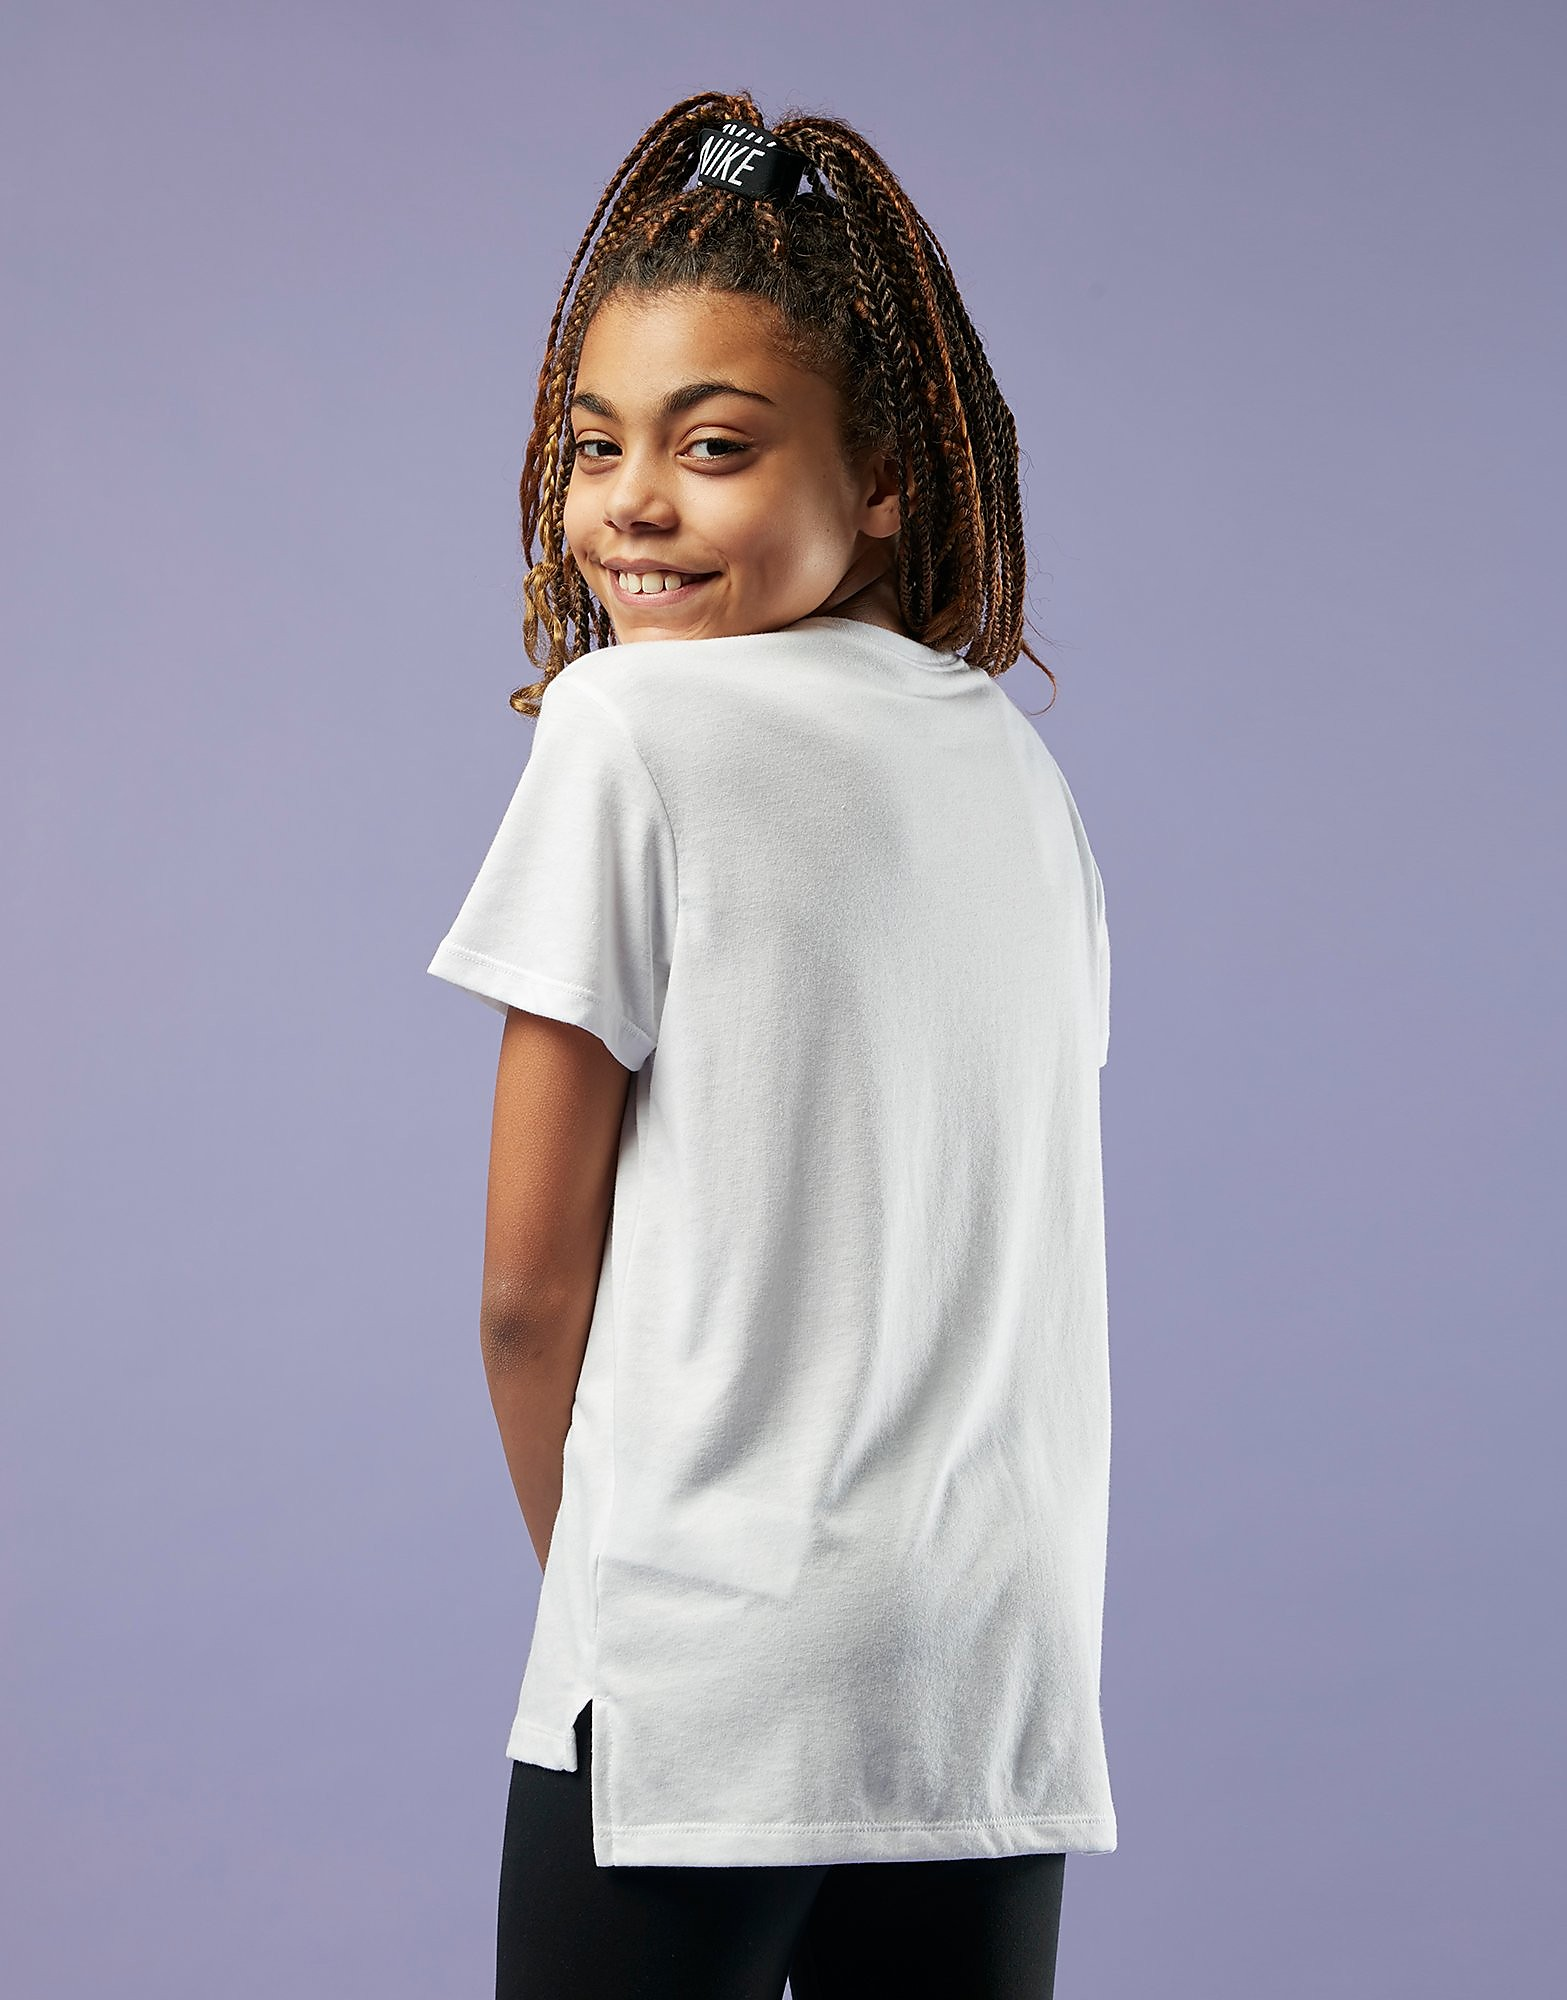 Nike Girls' Stack Just Do It T-Shirt Junior